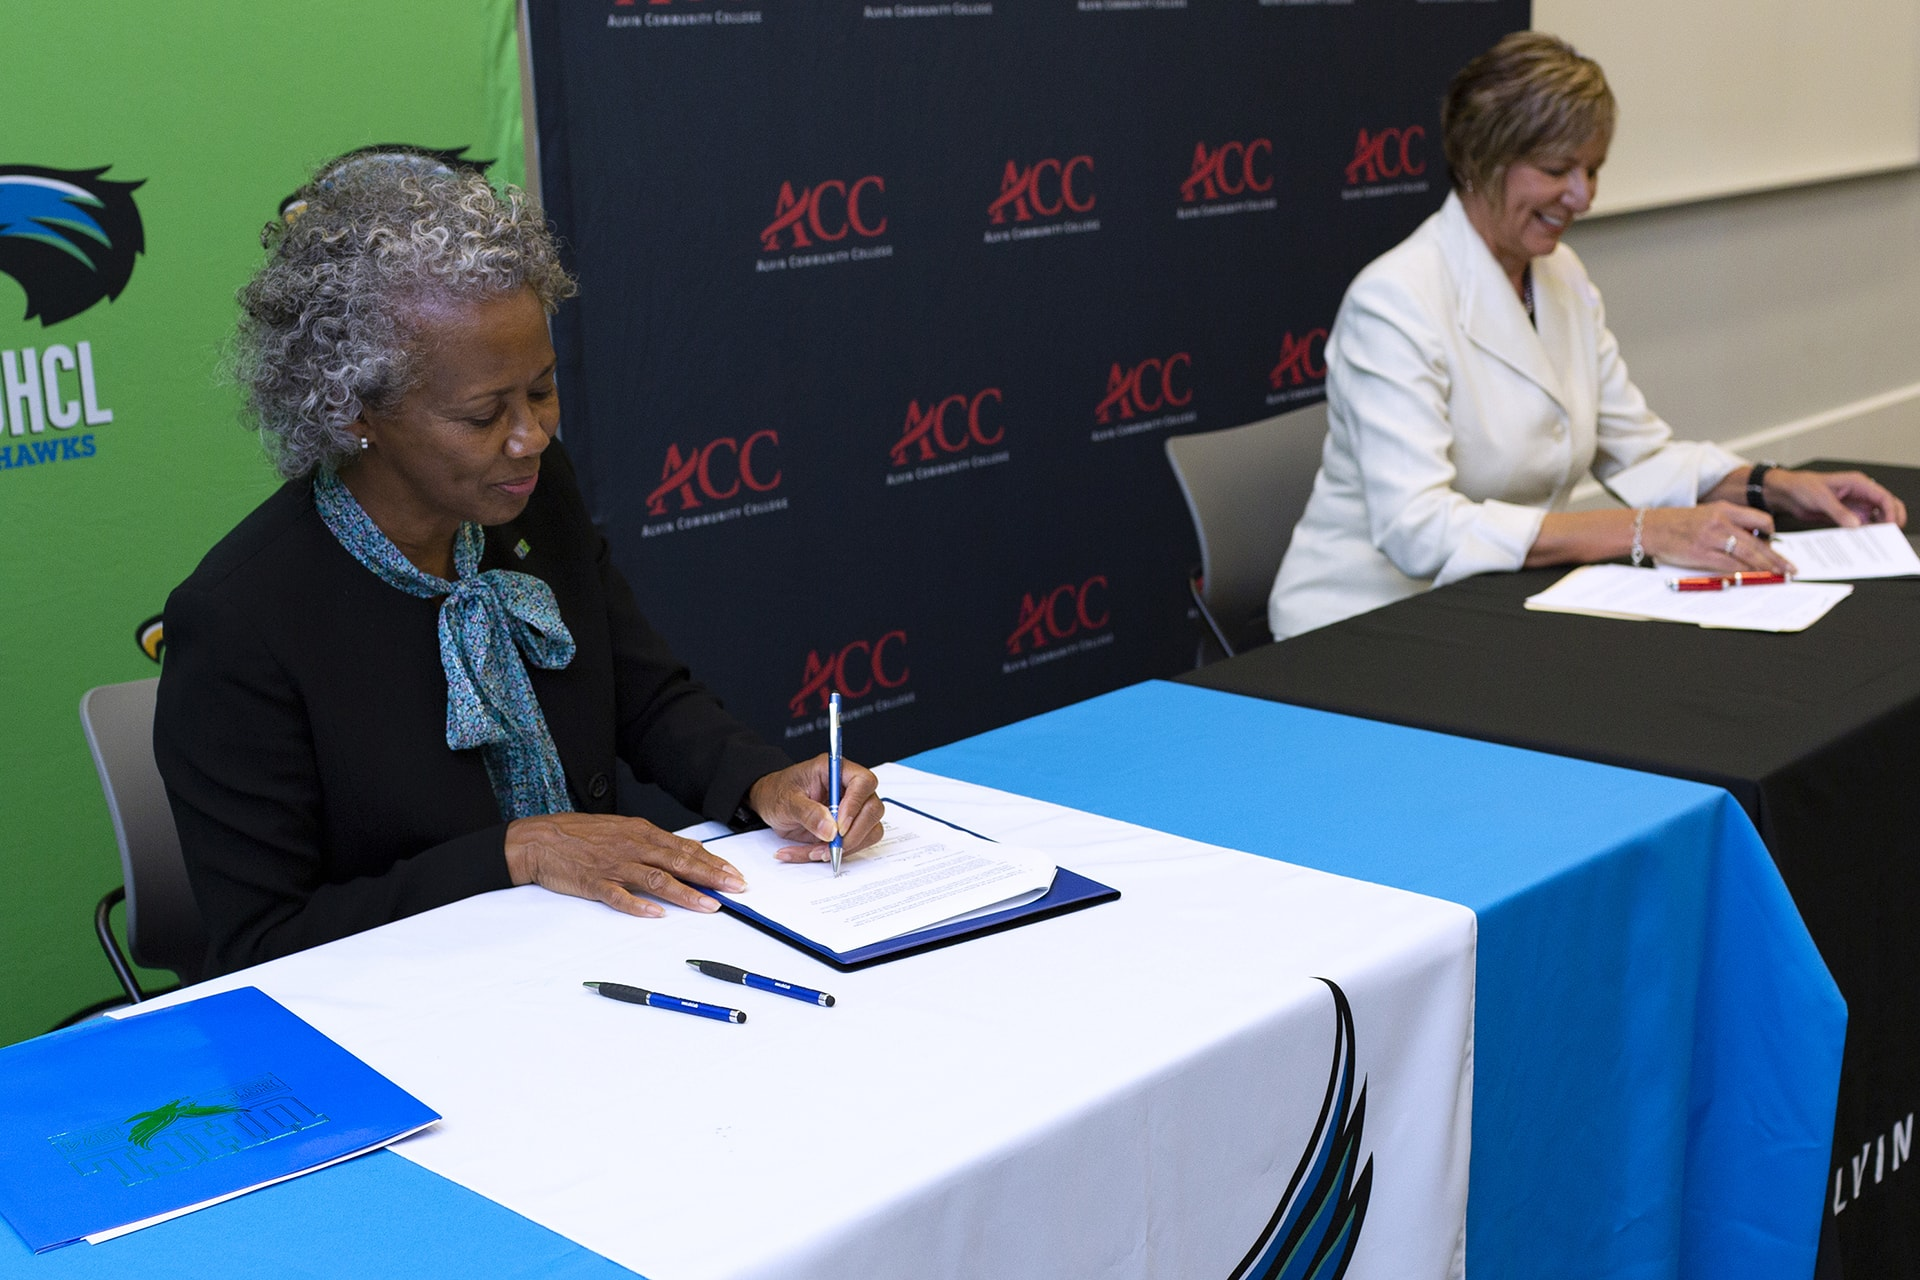 Pact makes it easier for ACC students to transfer to UHCL